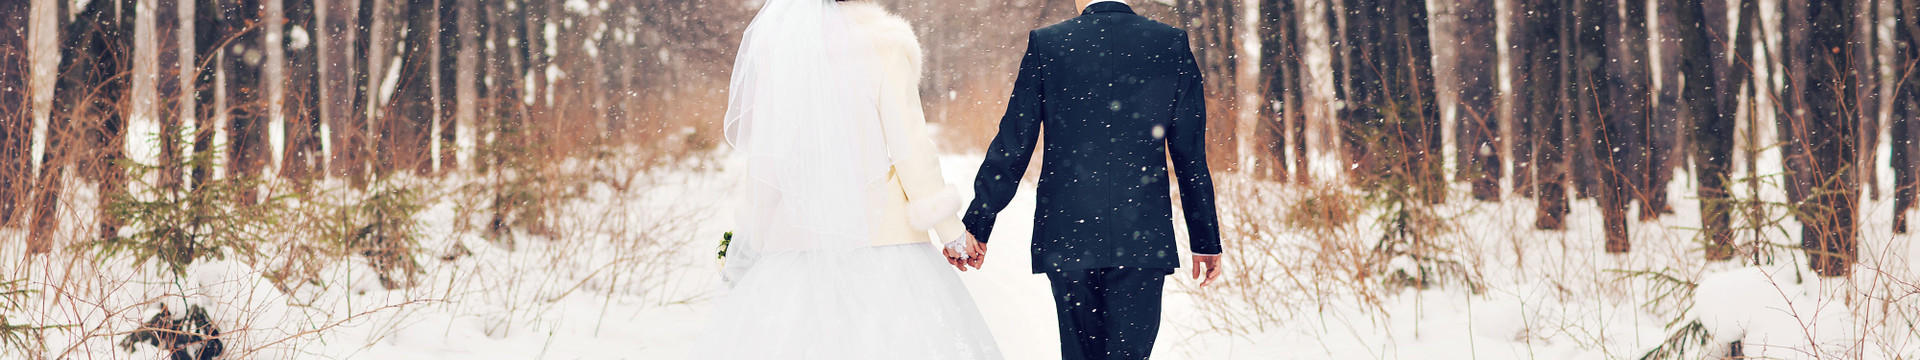 Park City Hotel Wedding Packages - newlyweds walking in the snow